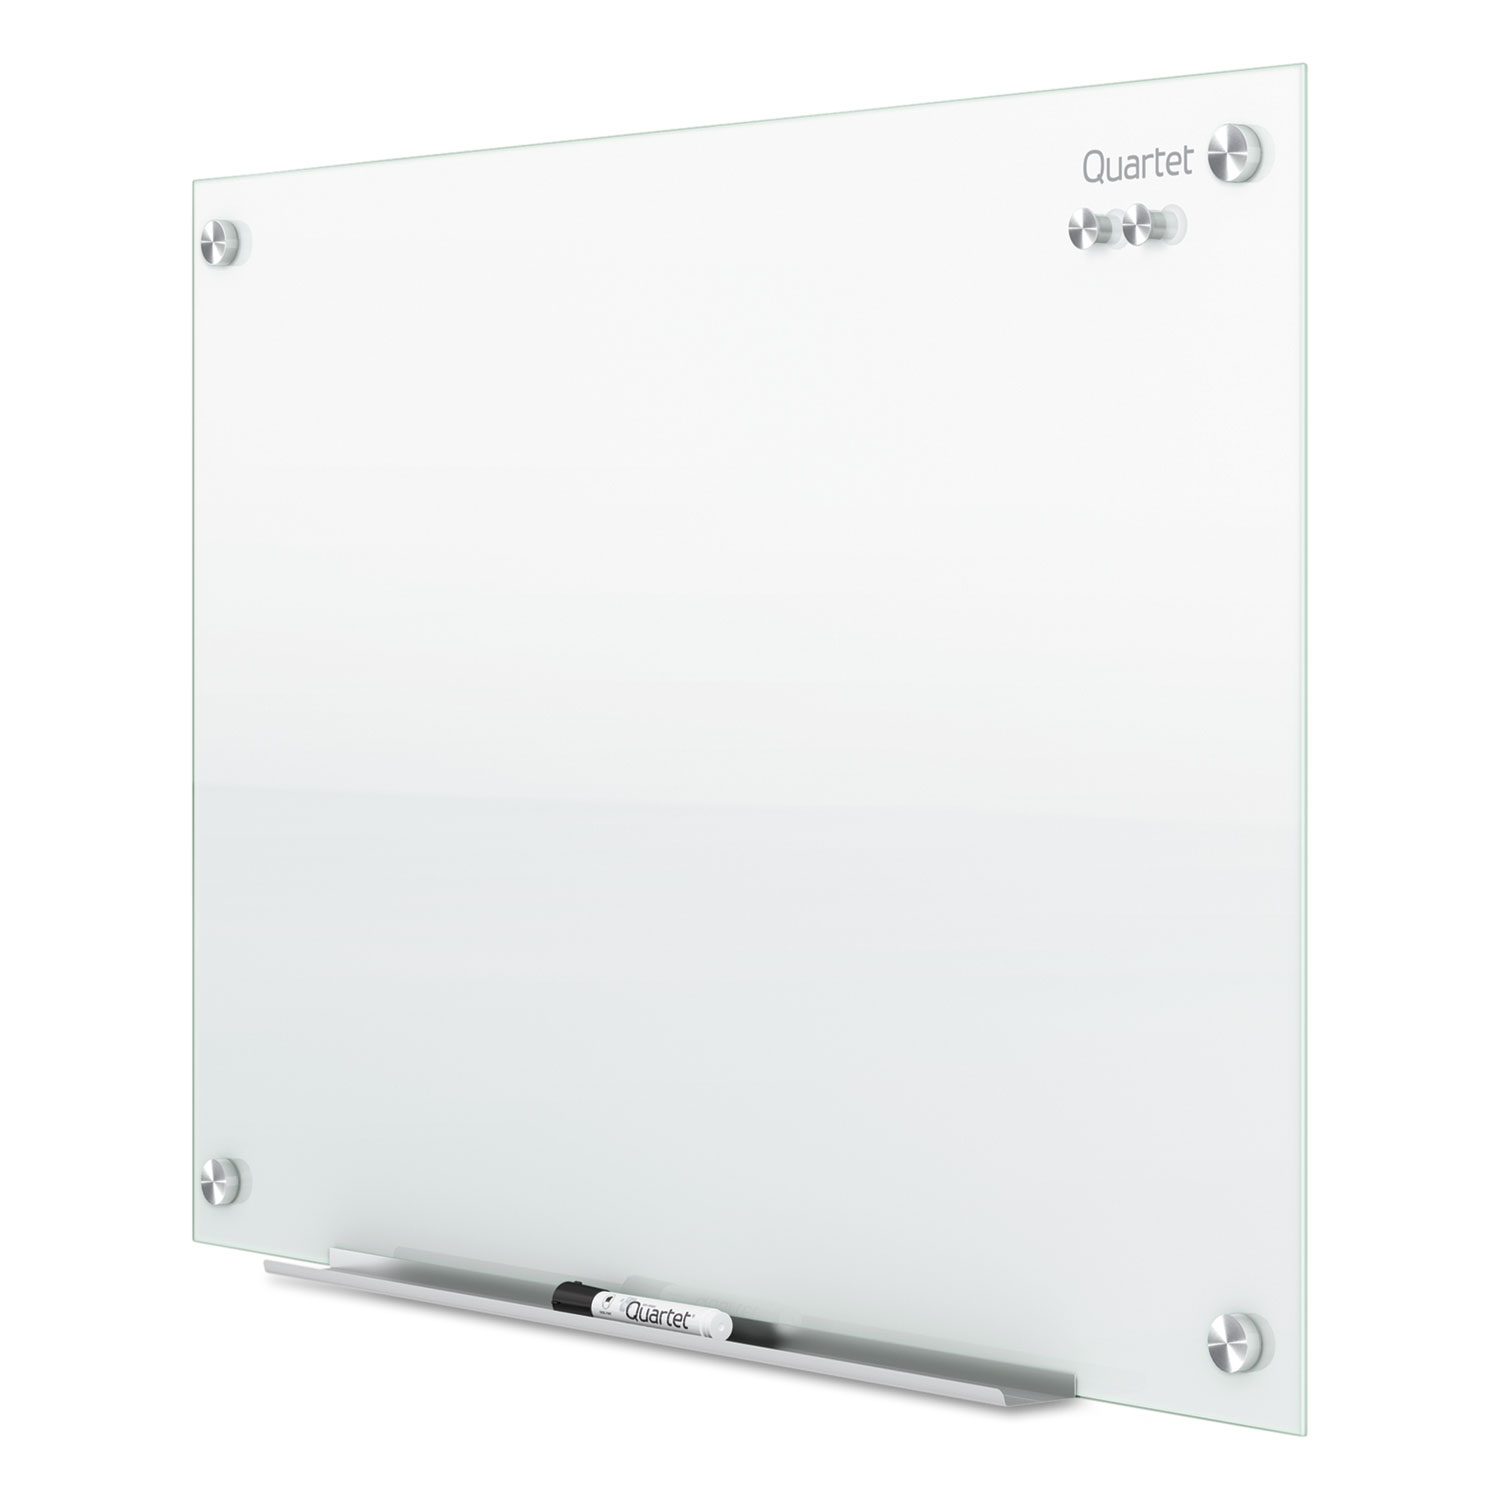 Picture of Infinity Magnetic Glass Marker Board, 48 x 36, White